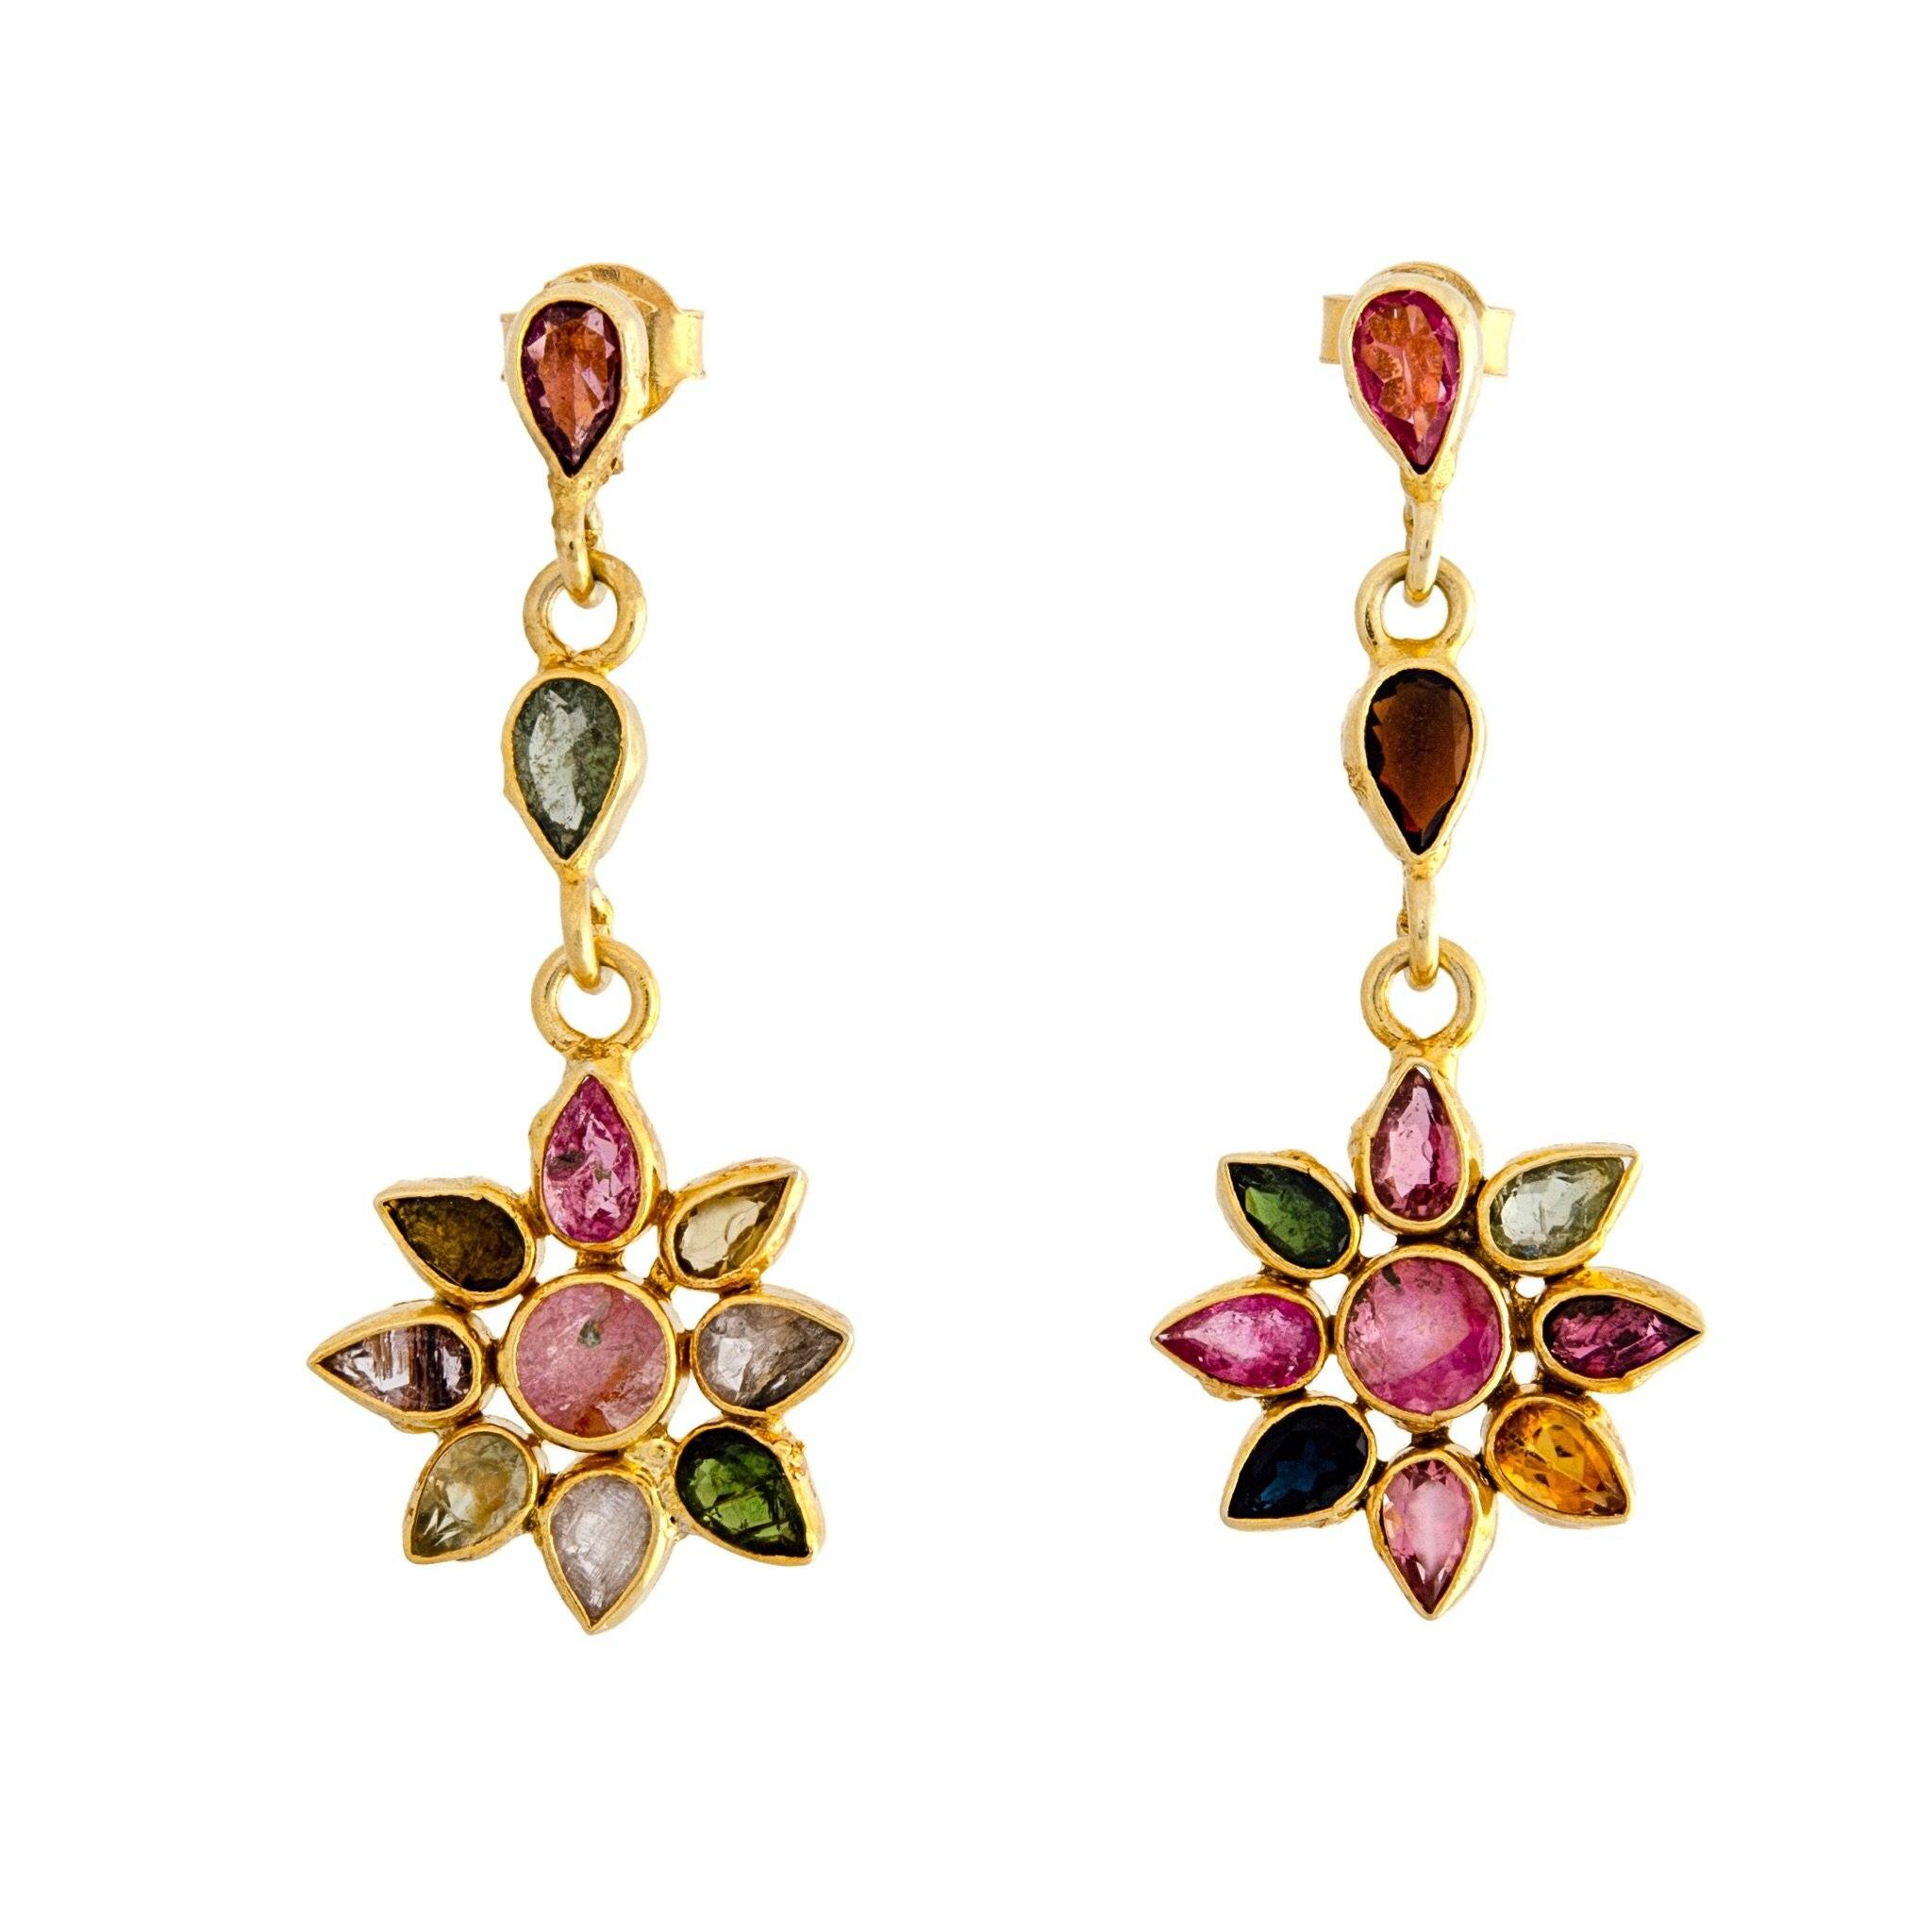 SOL tourmaline earrings